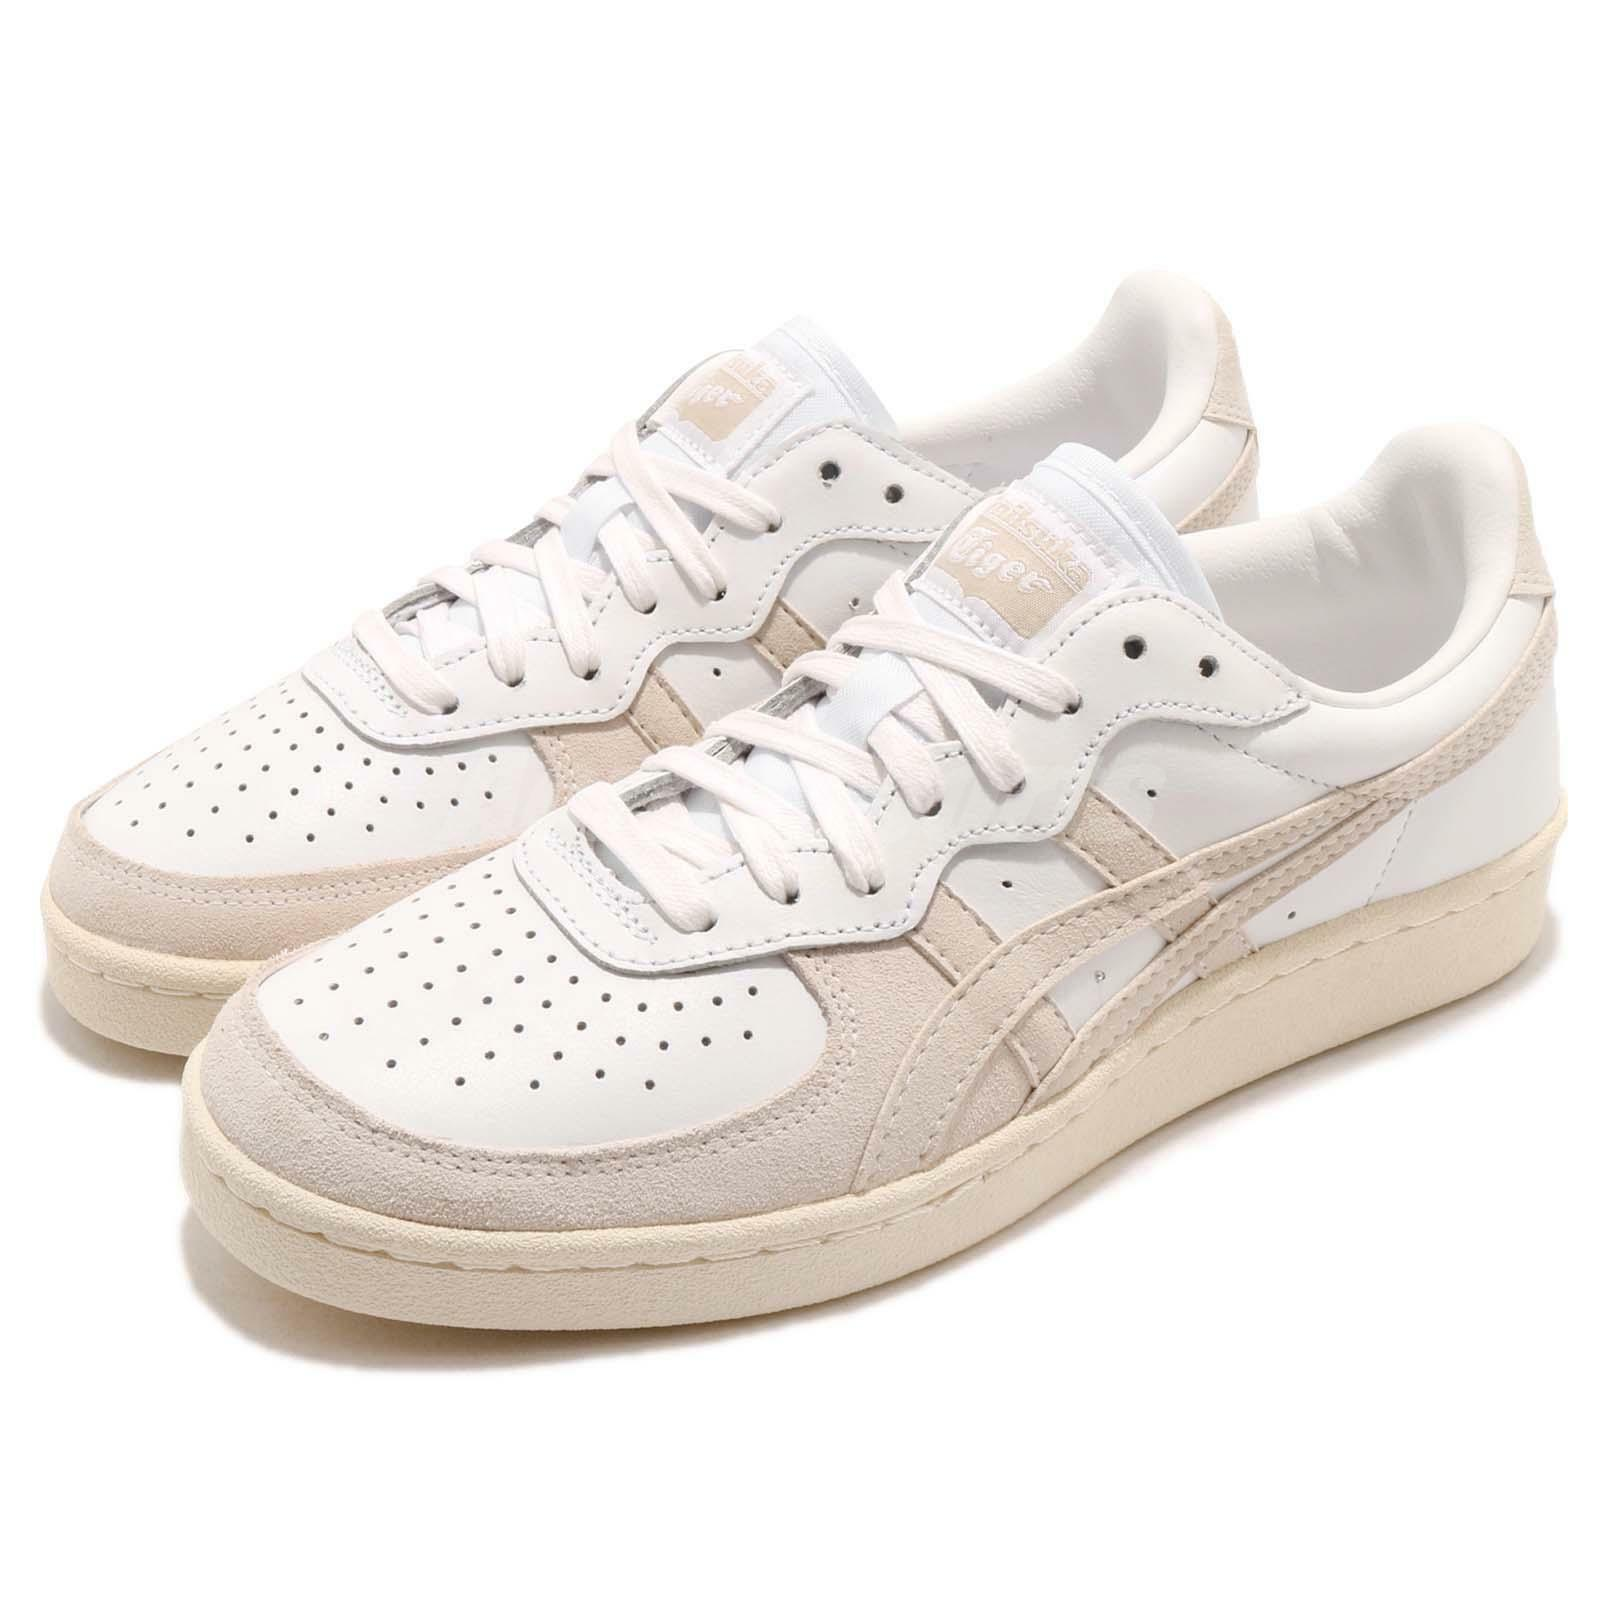 Asics Women Onitsuka Tiger GSM White Beige Men Women Asics Casual Shoes Sneakers D6H1L-0101 796466